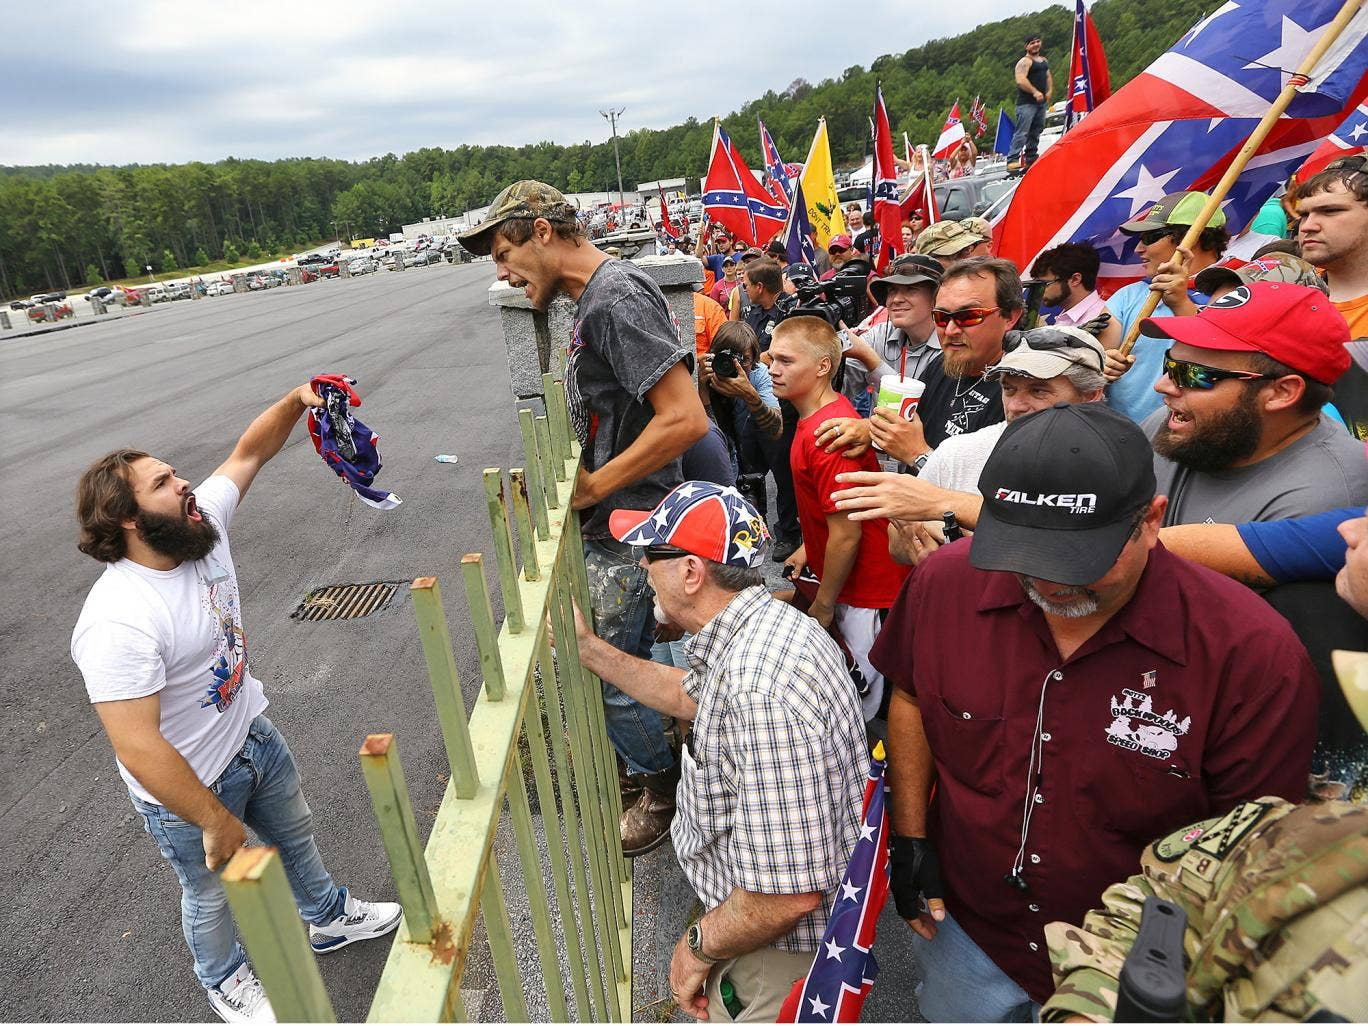 Tensions Flare As Confederate Flag Supporter Reaches For